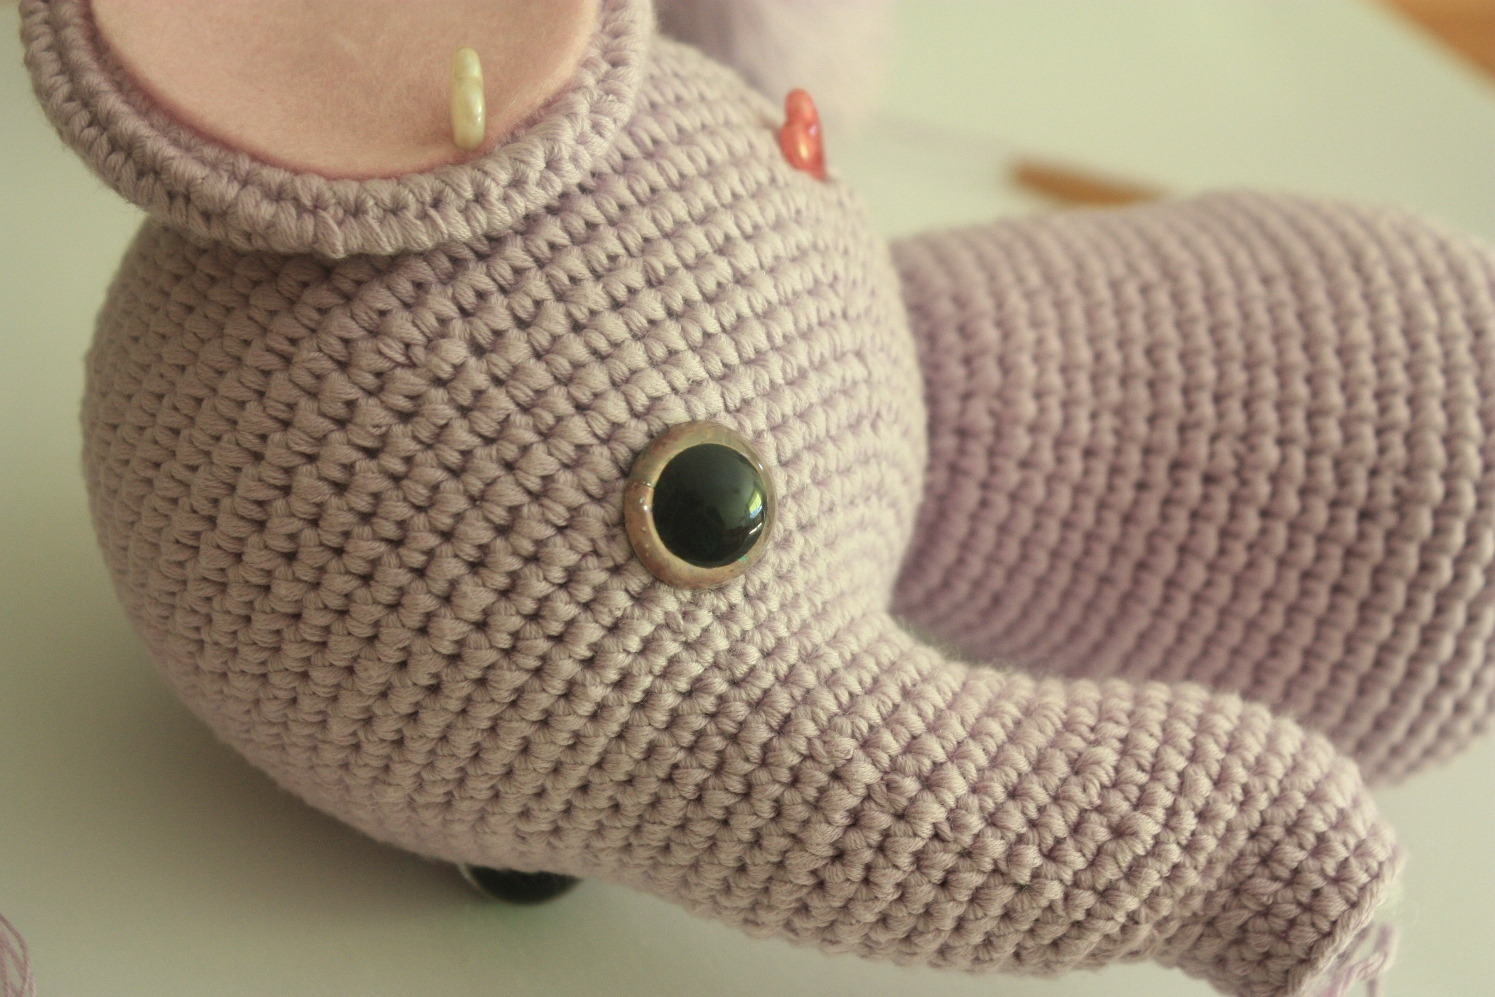 Amigurumi Elephant Pattern : Happyamigurumi: amigurumi elephant pattern in process